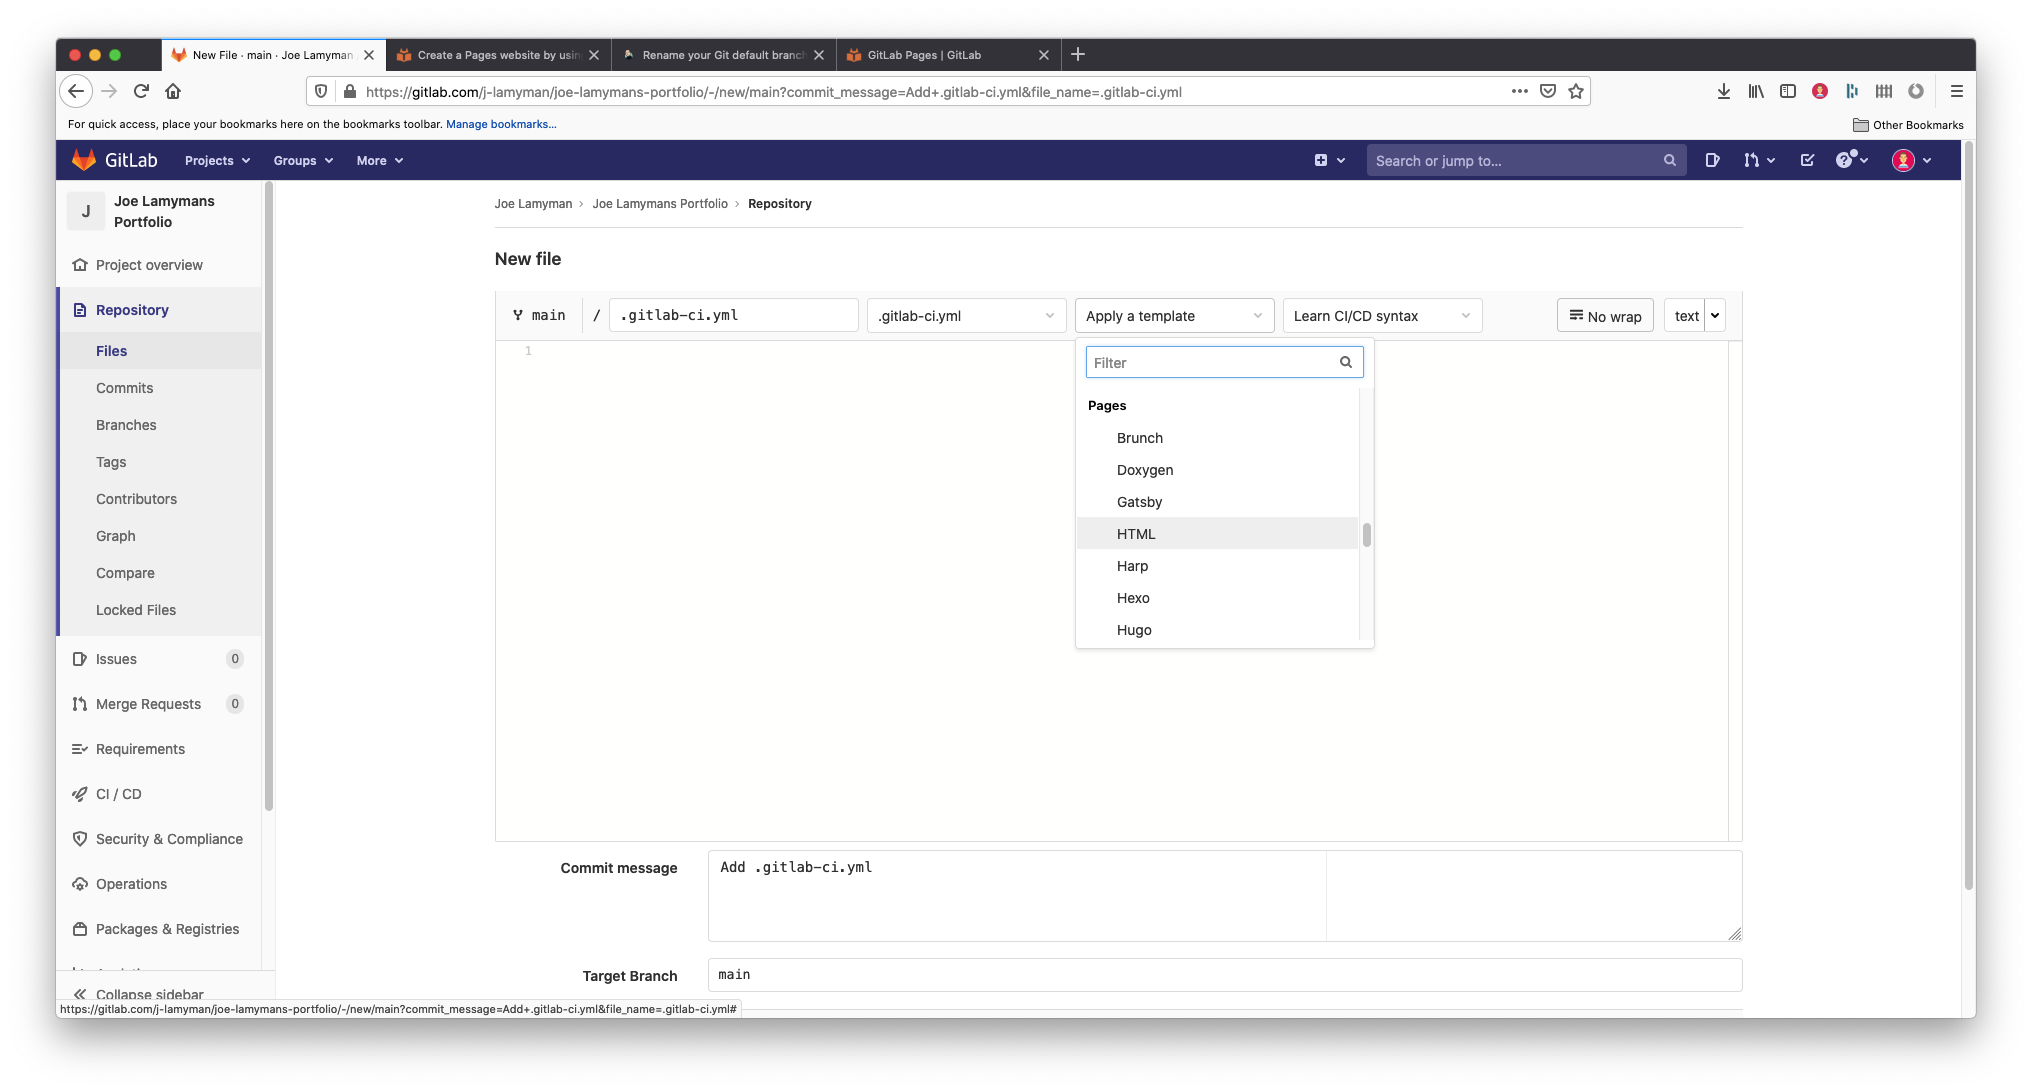 A screenshot of the Gitlab's 'New file' screen. The screen contains a series of dropdowns along the top for changing the branch, file type as well as providing the user an option to Apply a template. In this screenshot, I am on the main branch, the file is named .gitlab-ci.yml. This name was automatically generated. I have selected the 'Apply as template' button and am hovering over the option 'HTML' under the Pages subheading in the resulting dropwdown.